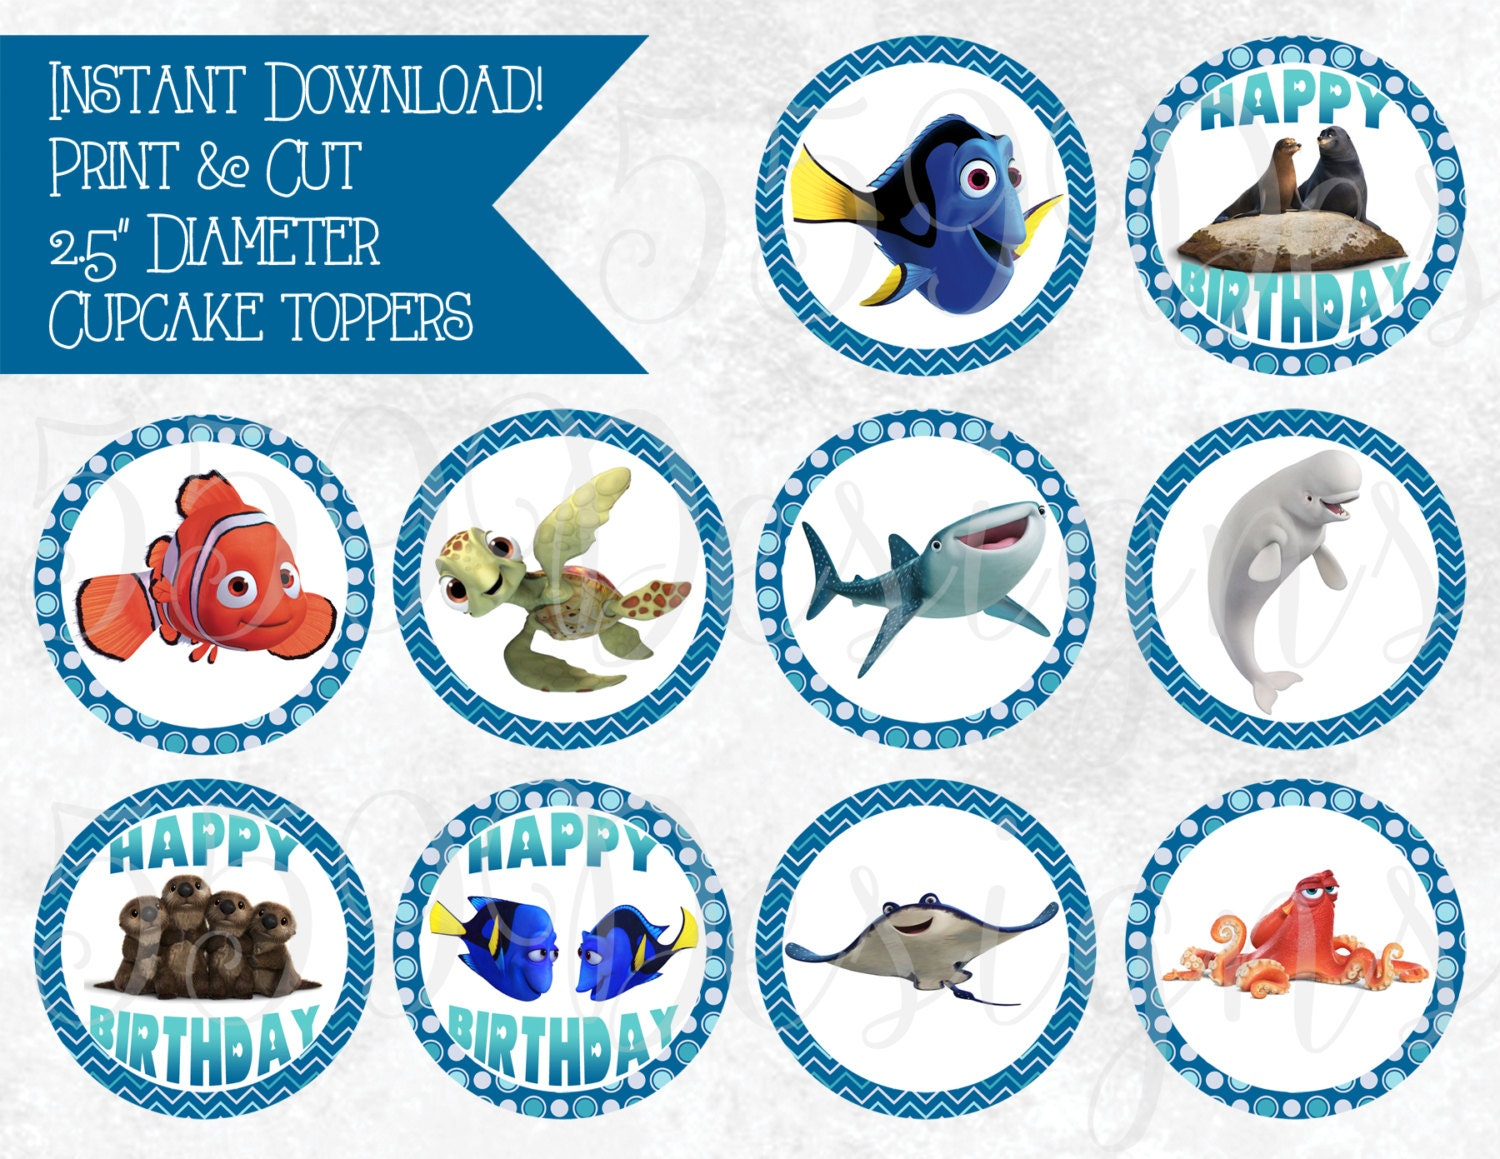 Cake Decoration Printable : Printable Finding Dory Cupcake Toppers Download Print Cake